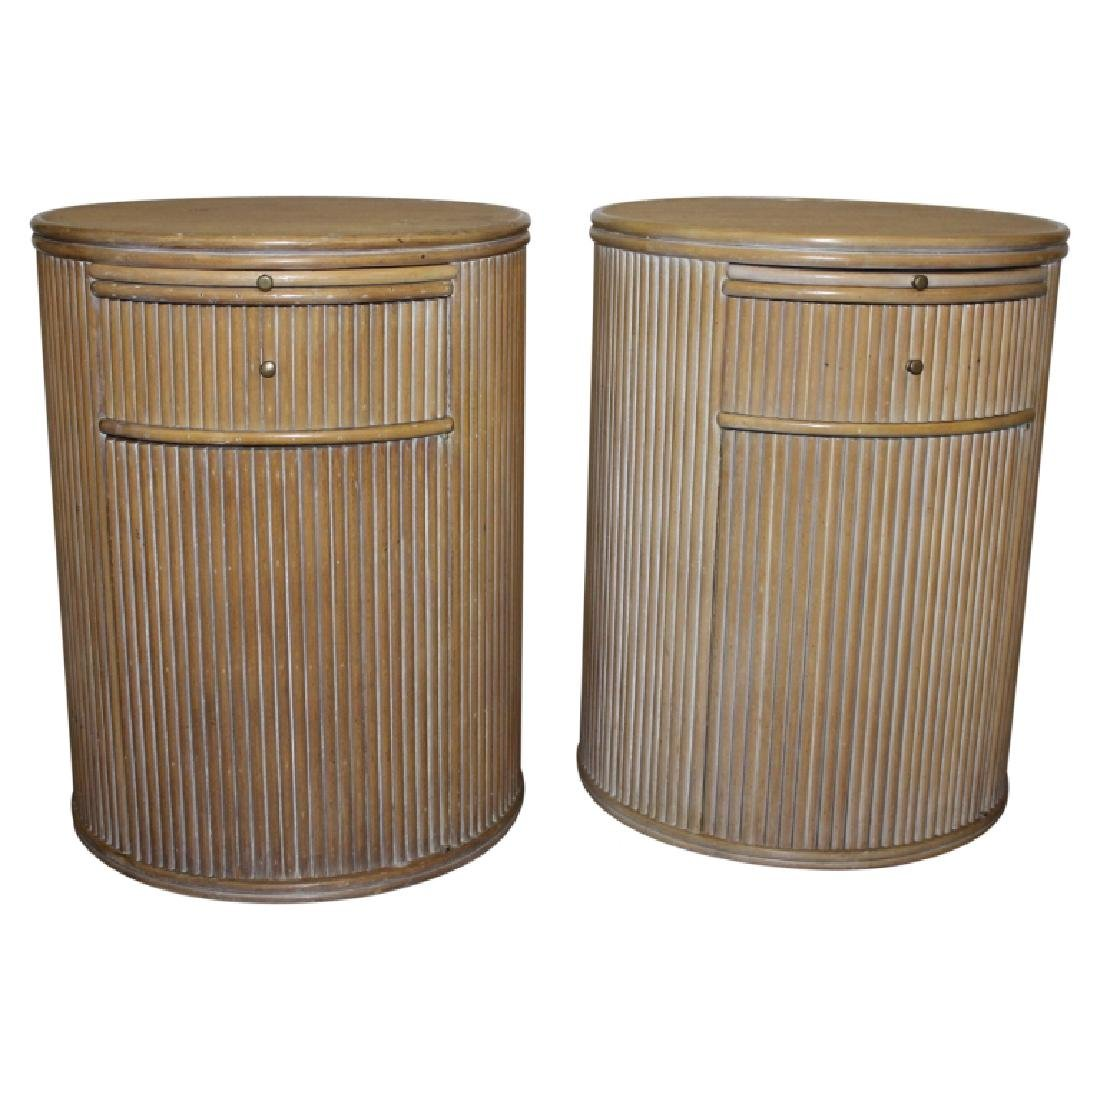 Pair of Rattan Style End Tables